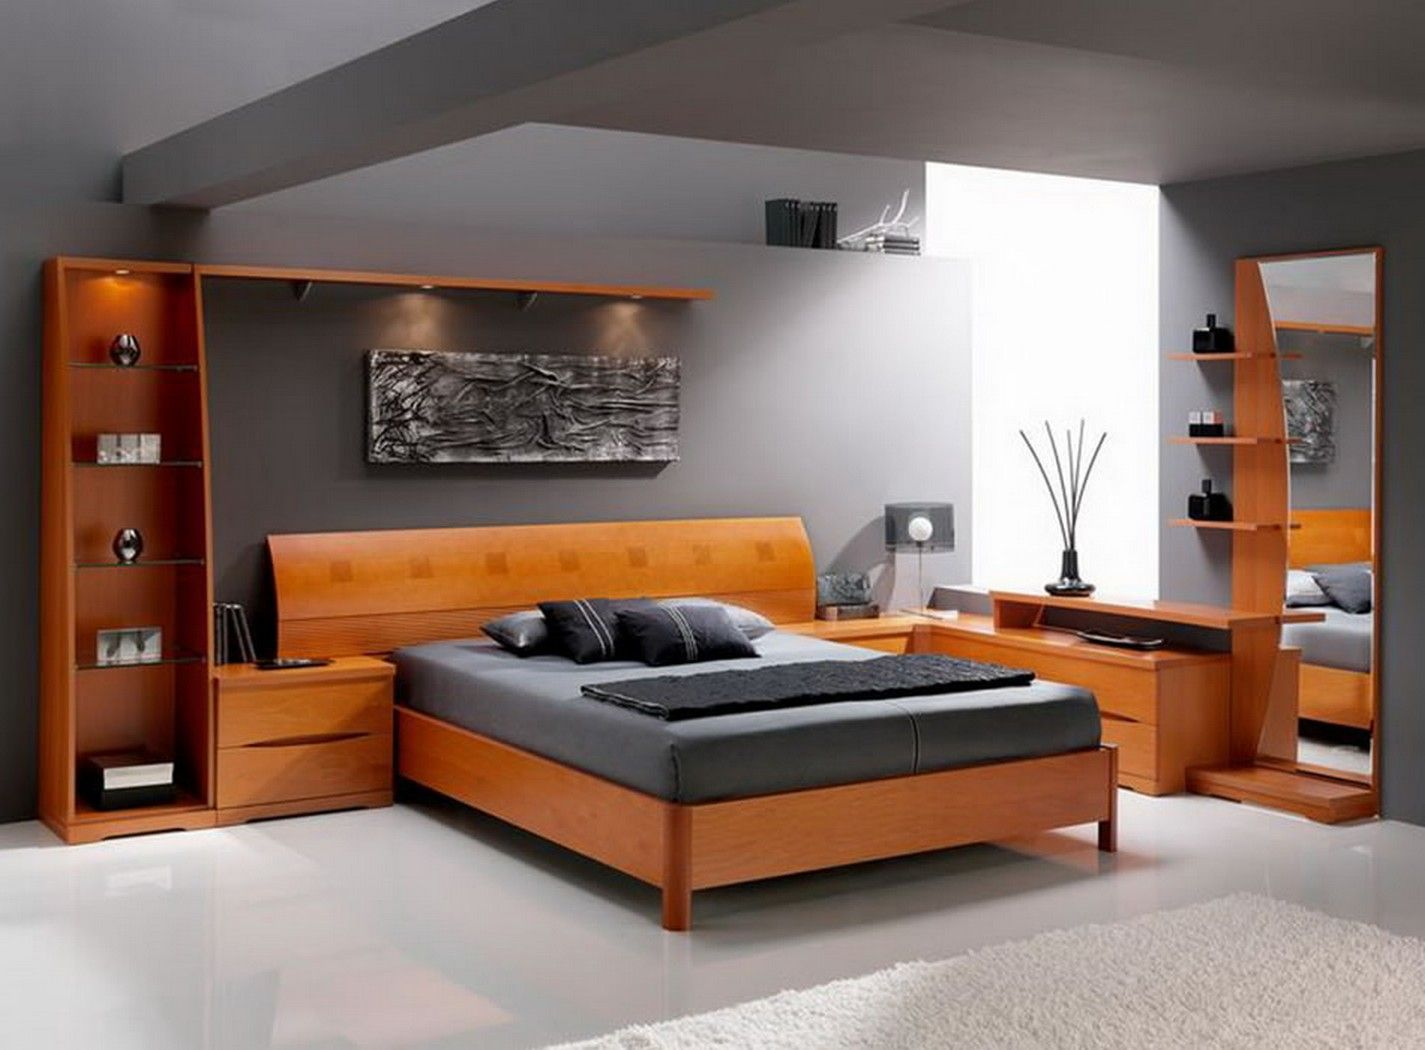 30 Awesome Image Of Mens Bedroom Furniture Masculine Men Design With Abstract Painting